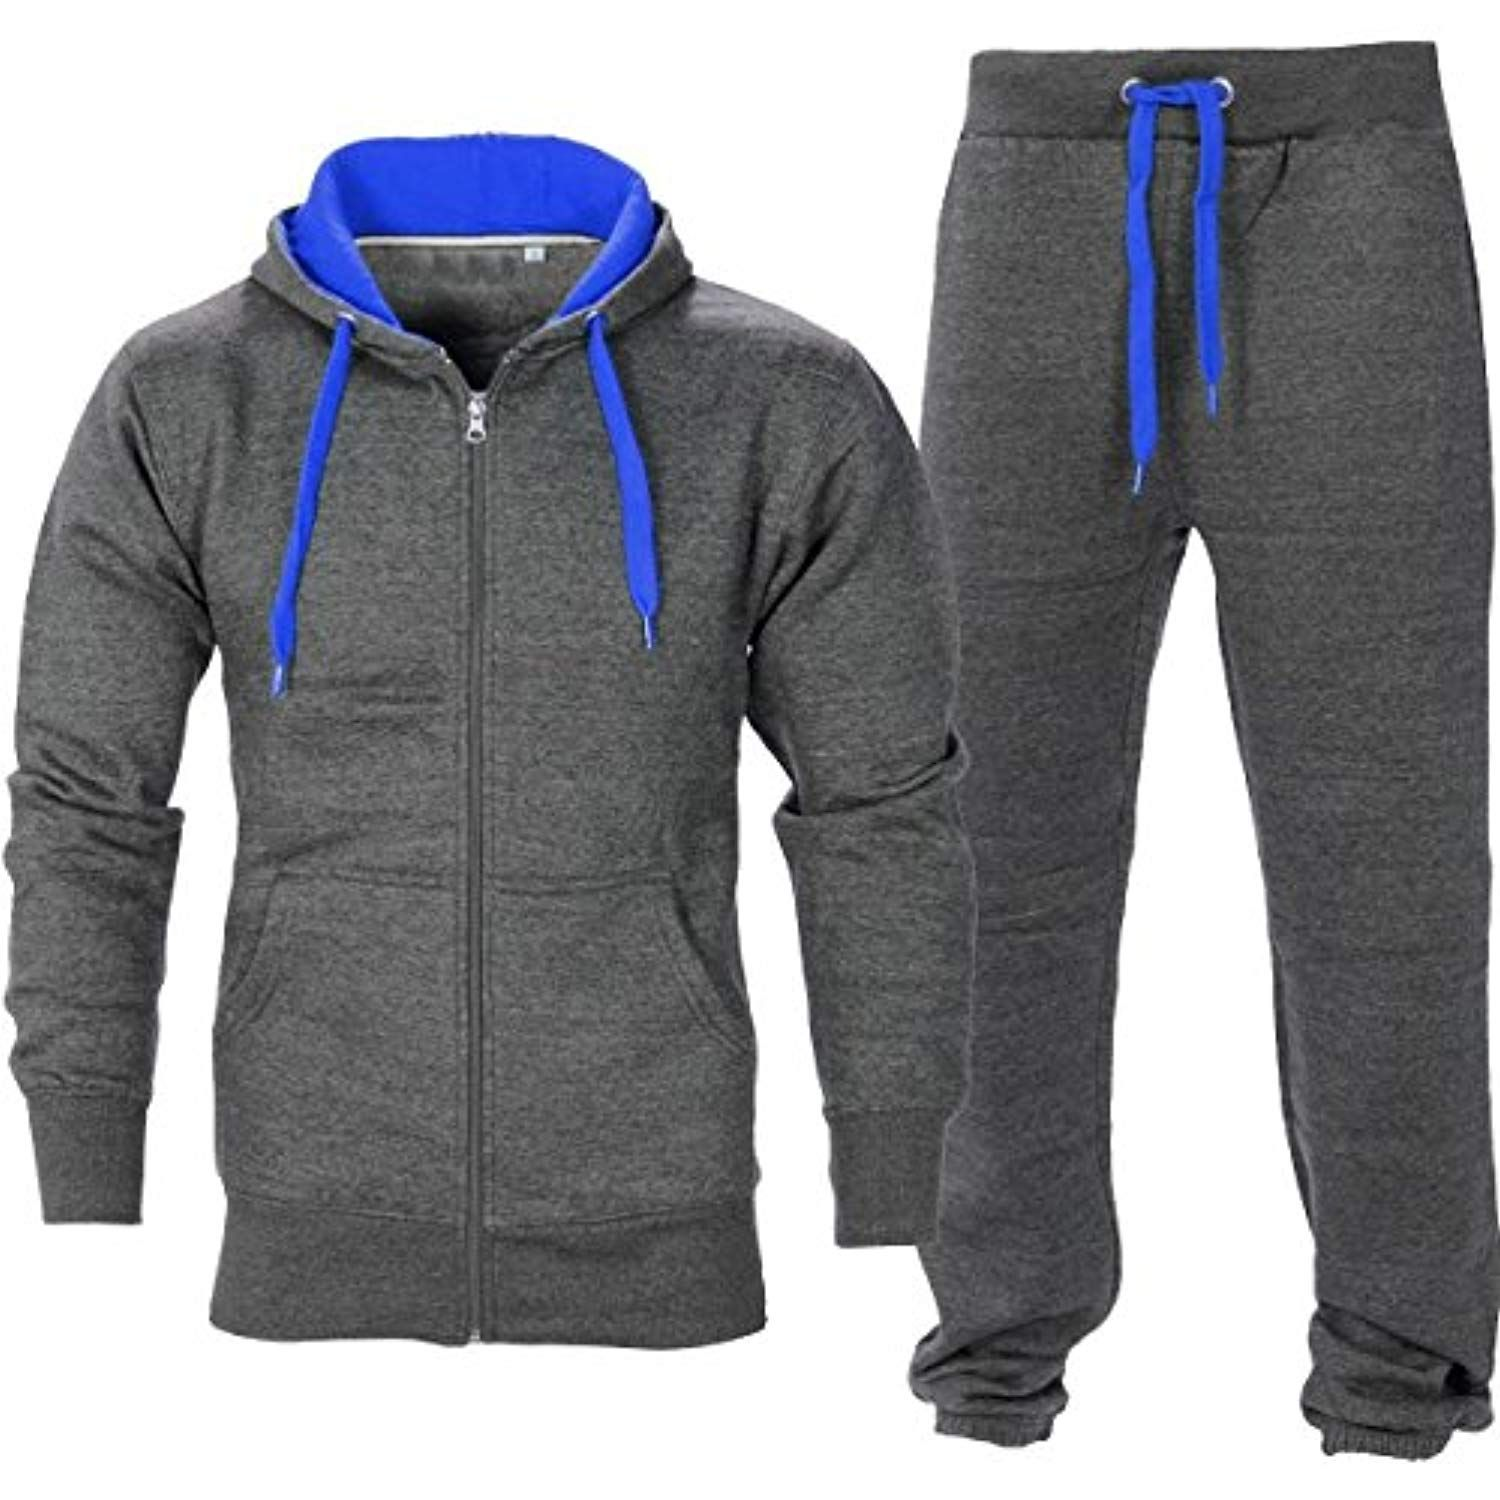 Mens Tracksuit Zip Hooded Top Gym Blue Contrast Jogging Set Fleece Bottoms S-5xl Clothing, Shoes & Accessories